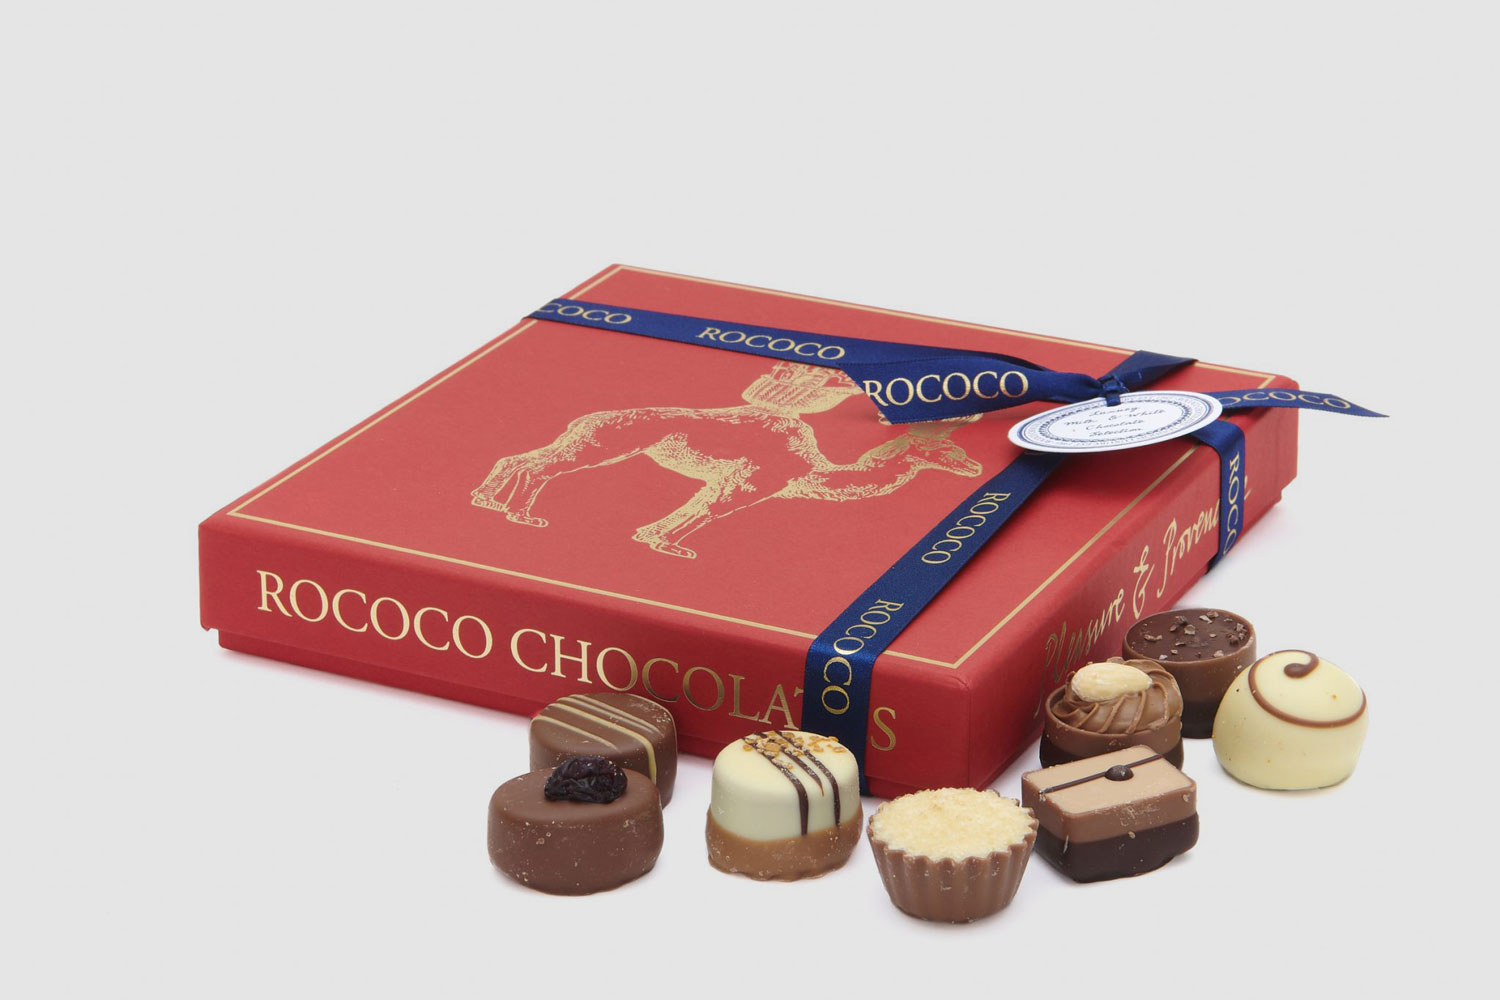 Progress Packaging Rococo Chocolates Bespoke Luxury Pantone Match Confectionery Food Sweet Gold Foil Box Lid Recyclable Eco Friendly Manufacture Production Print 03